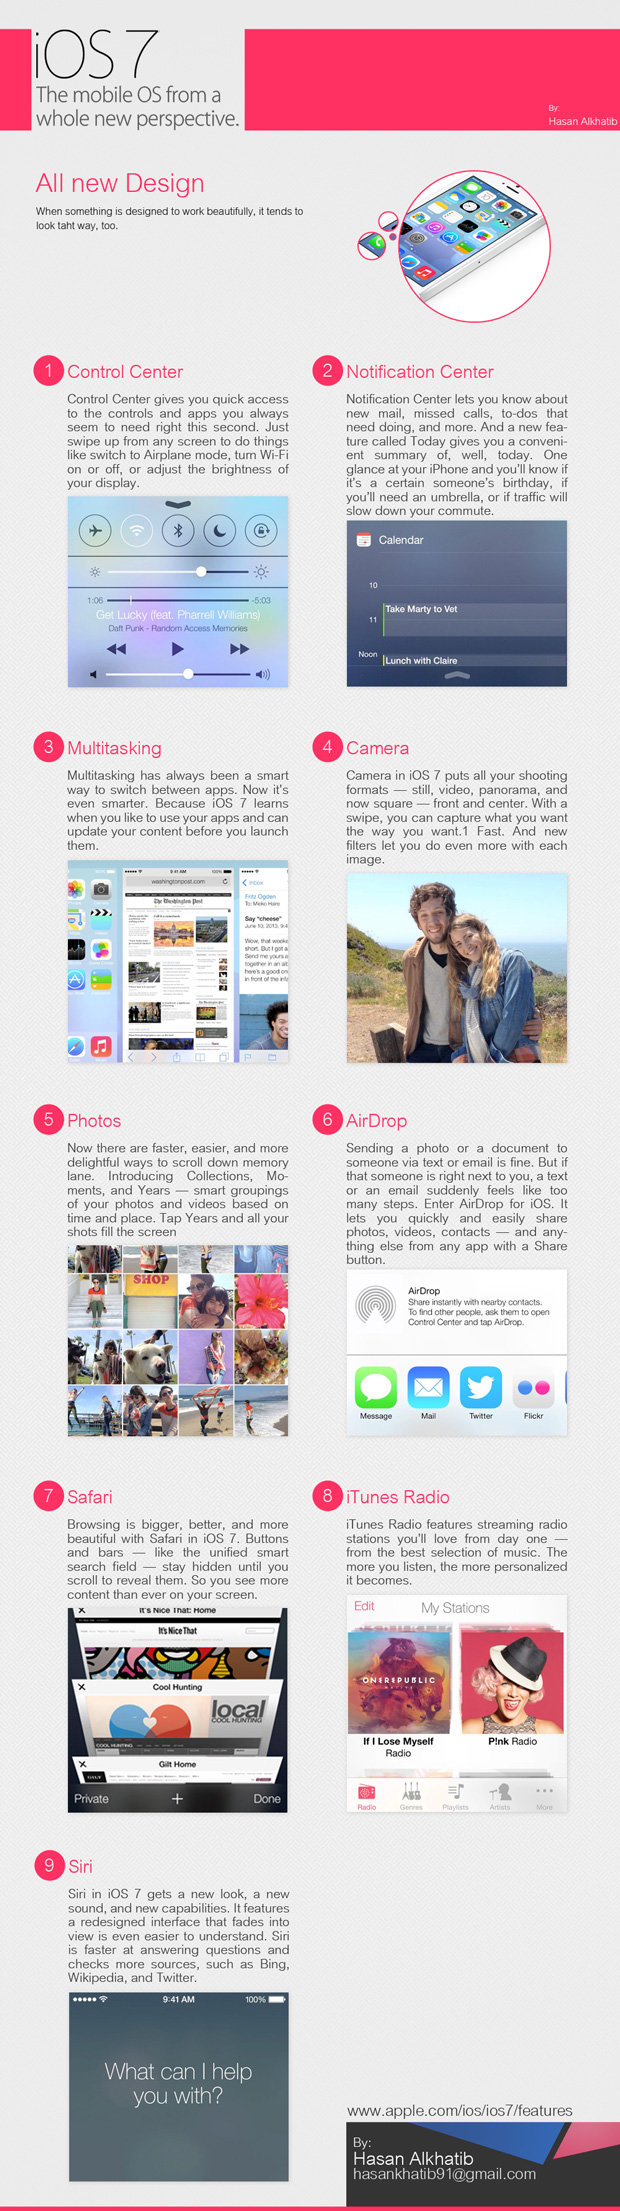 ios-7-feature-overview-infographic